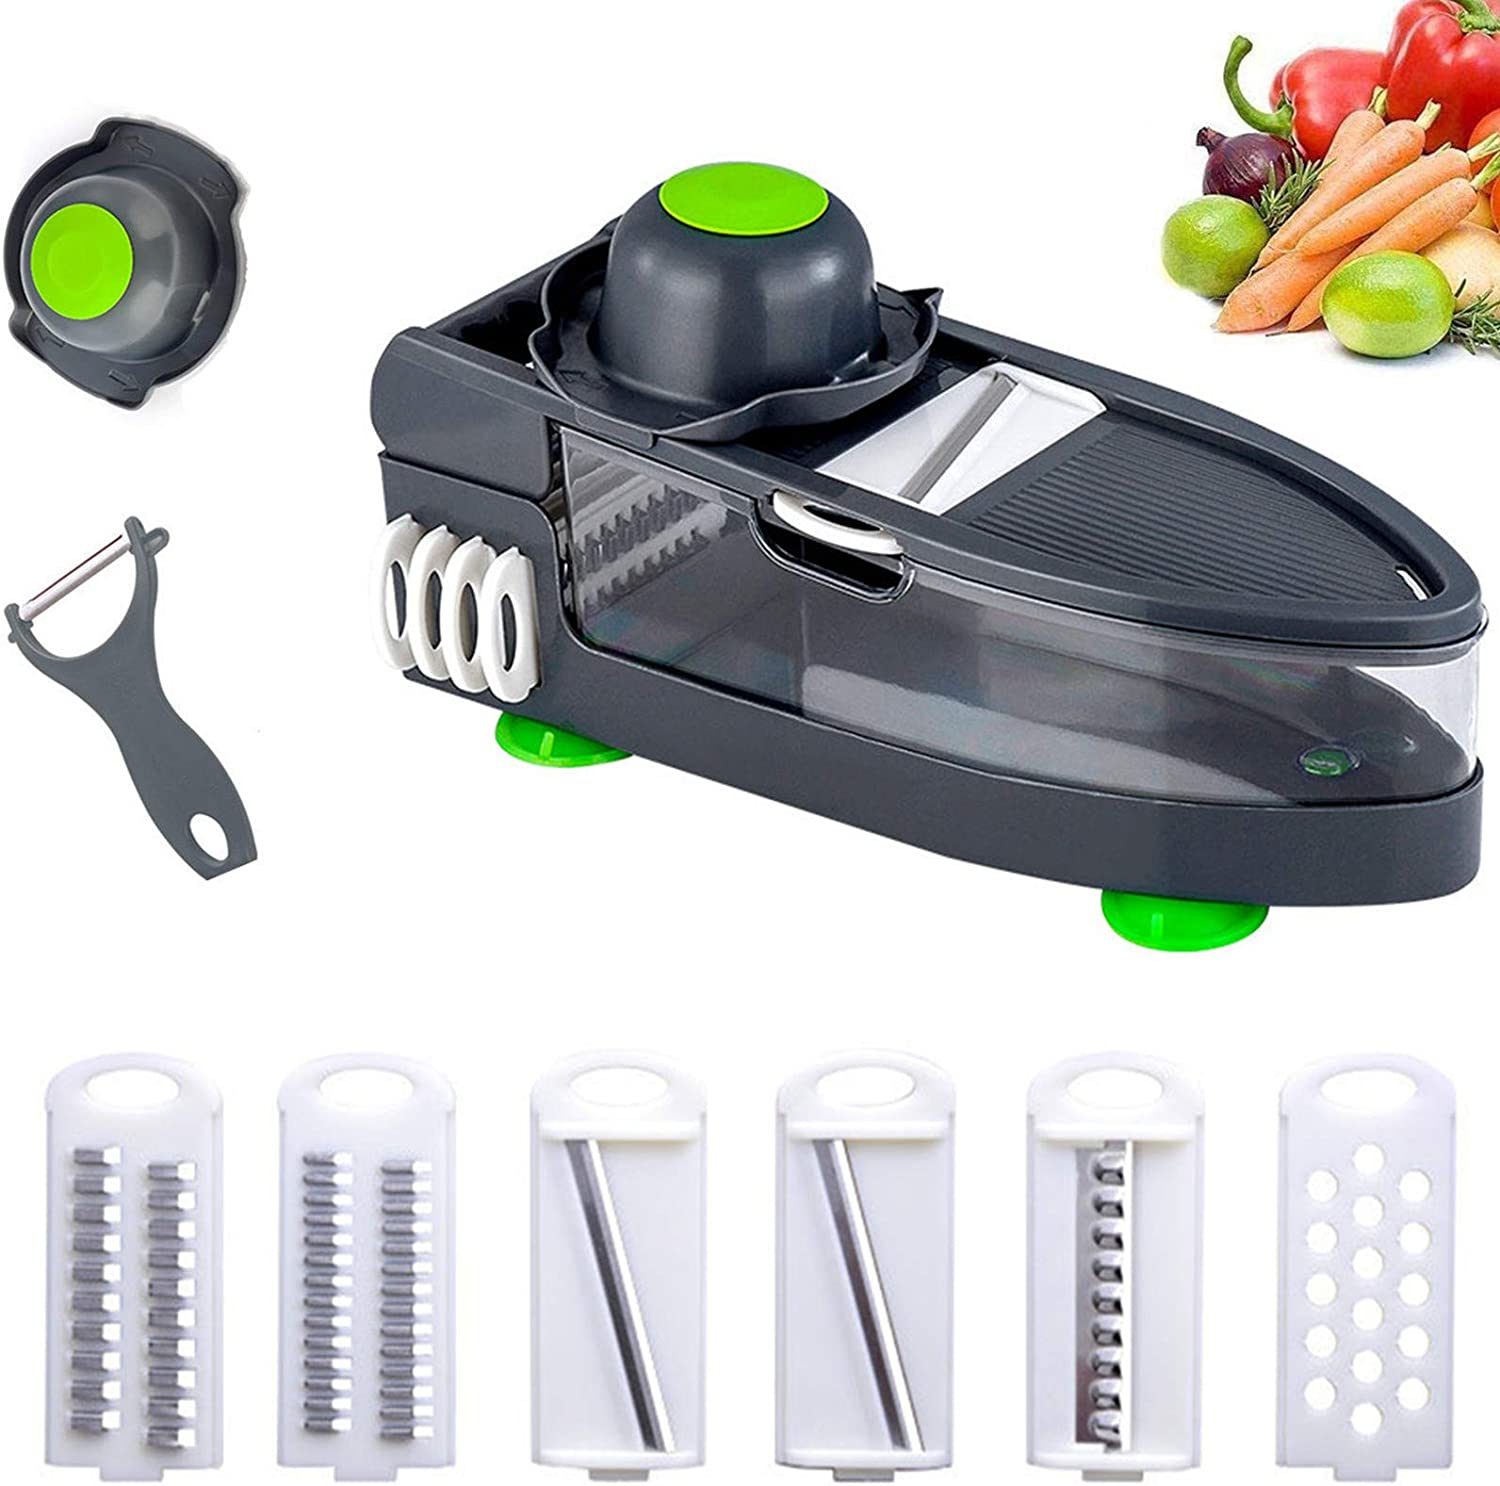 9 in 1Multifunctional vegetable cuttr,Slicing Tool, with 6 Interchangeable Blades & Safety Holder, Manual Food Chopper Slicers for Fruits and Vegetables (9 in 1)